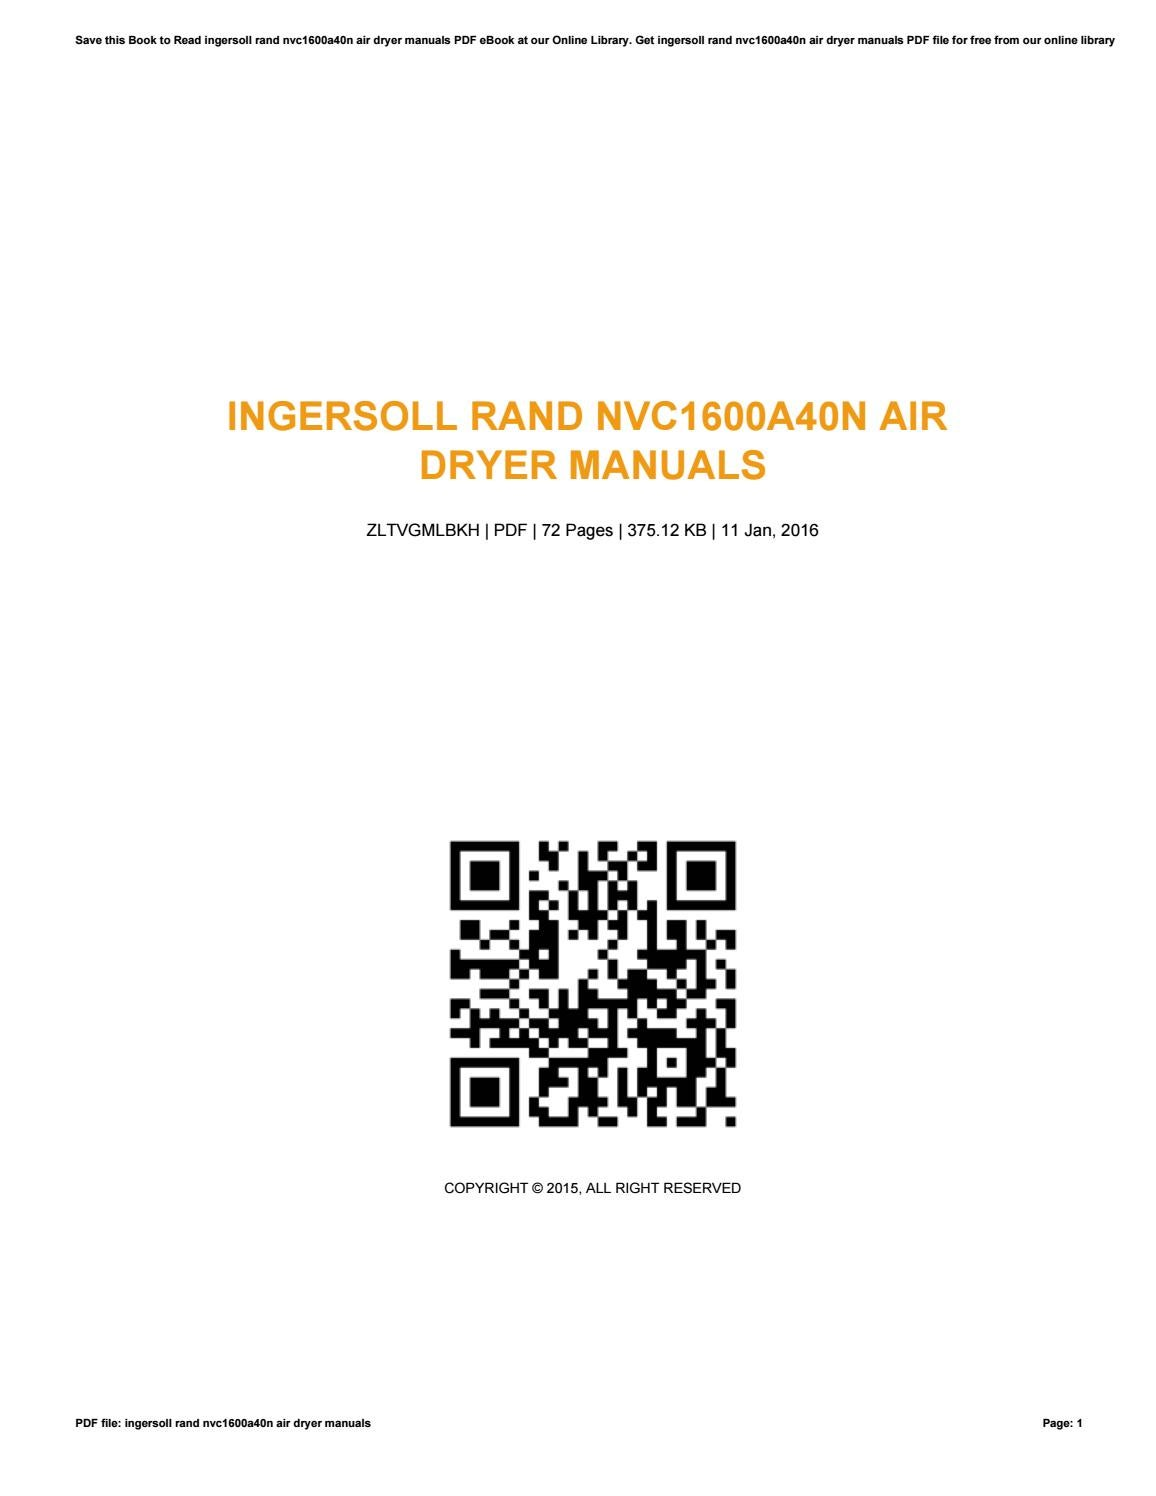 Ingersoll Rand Nvc1600a40n Air Dryer Manuals By Susanaday4040 Issuu Schematic